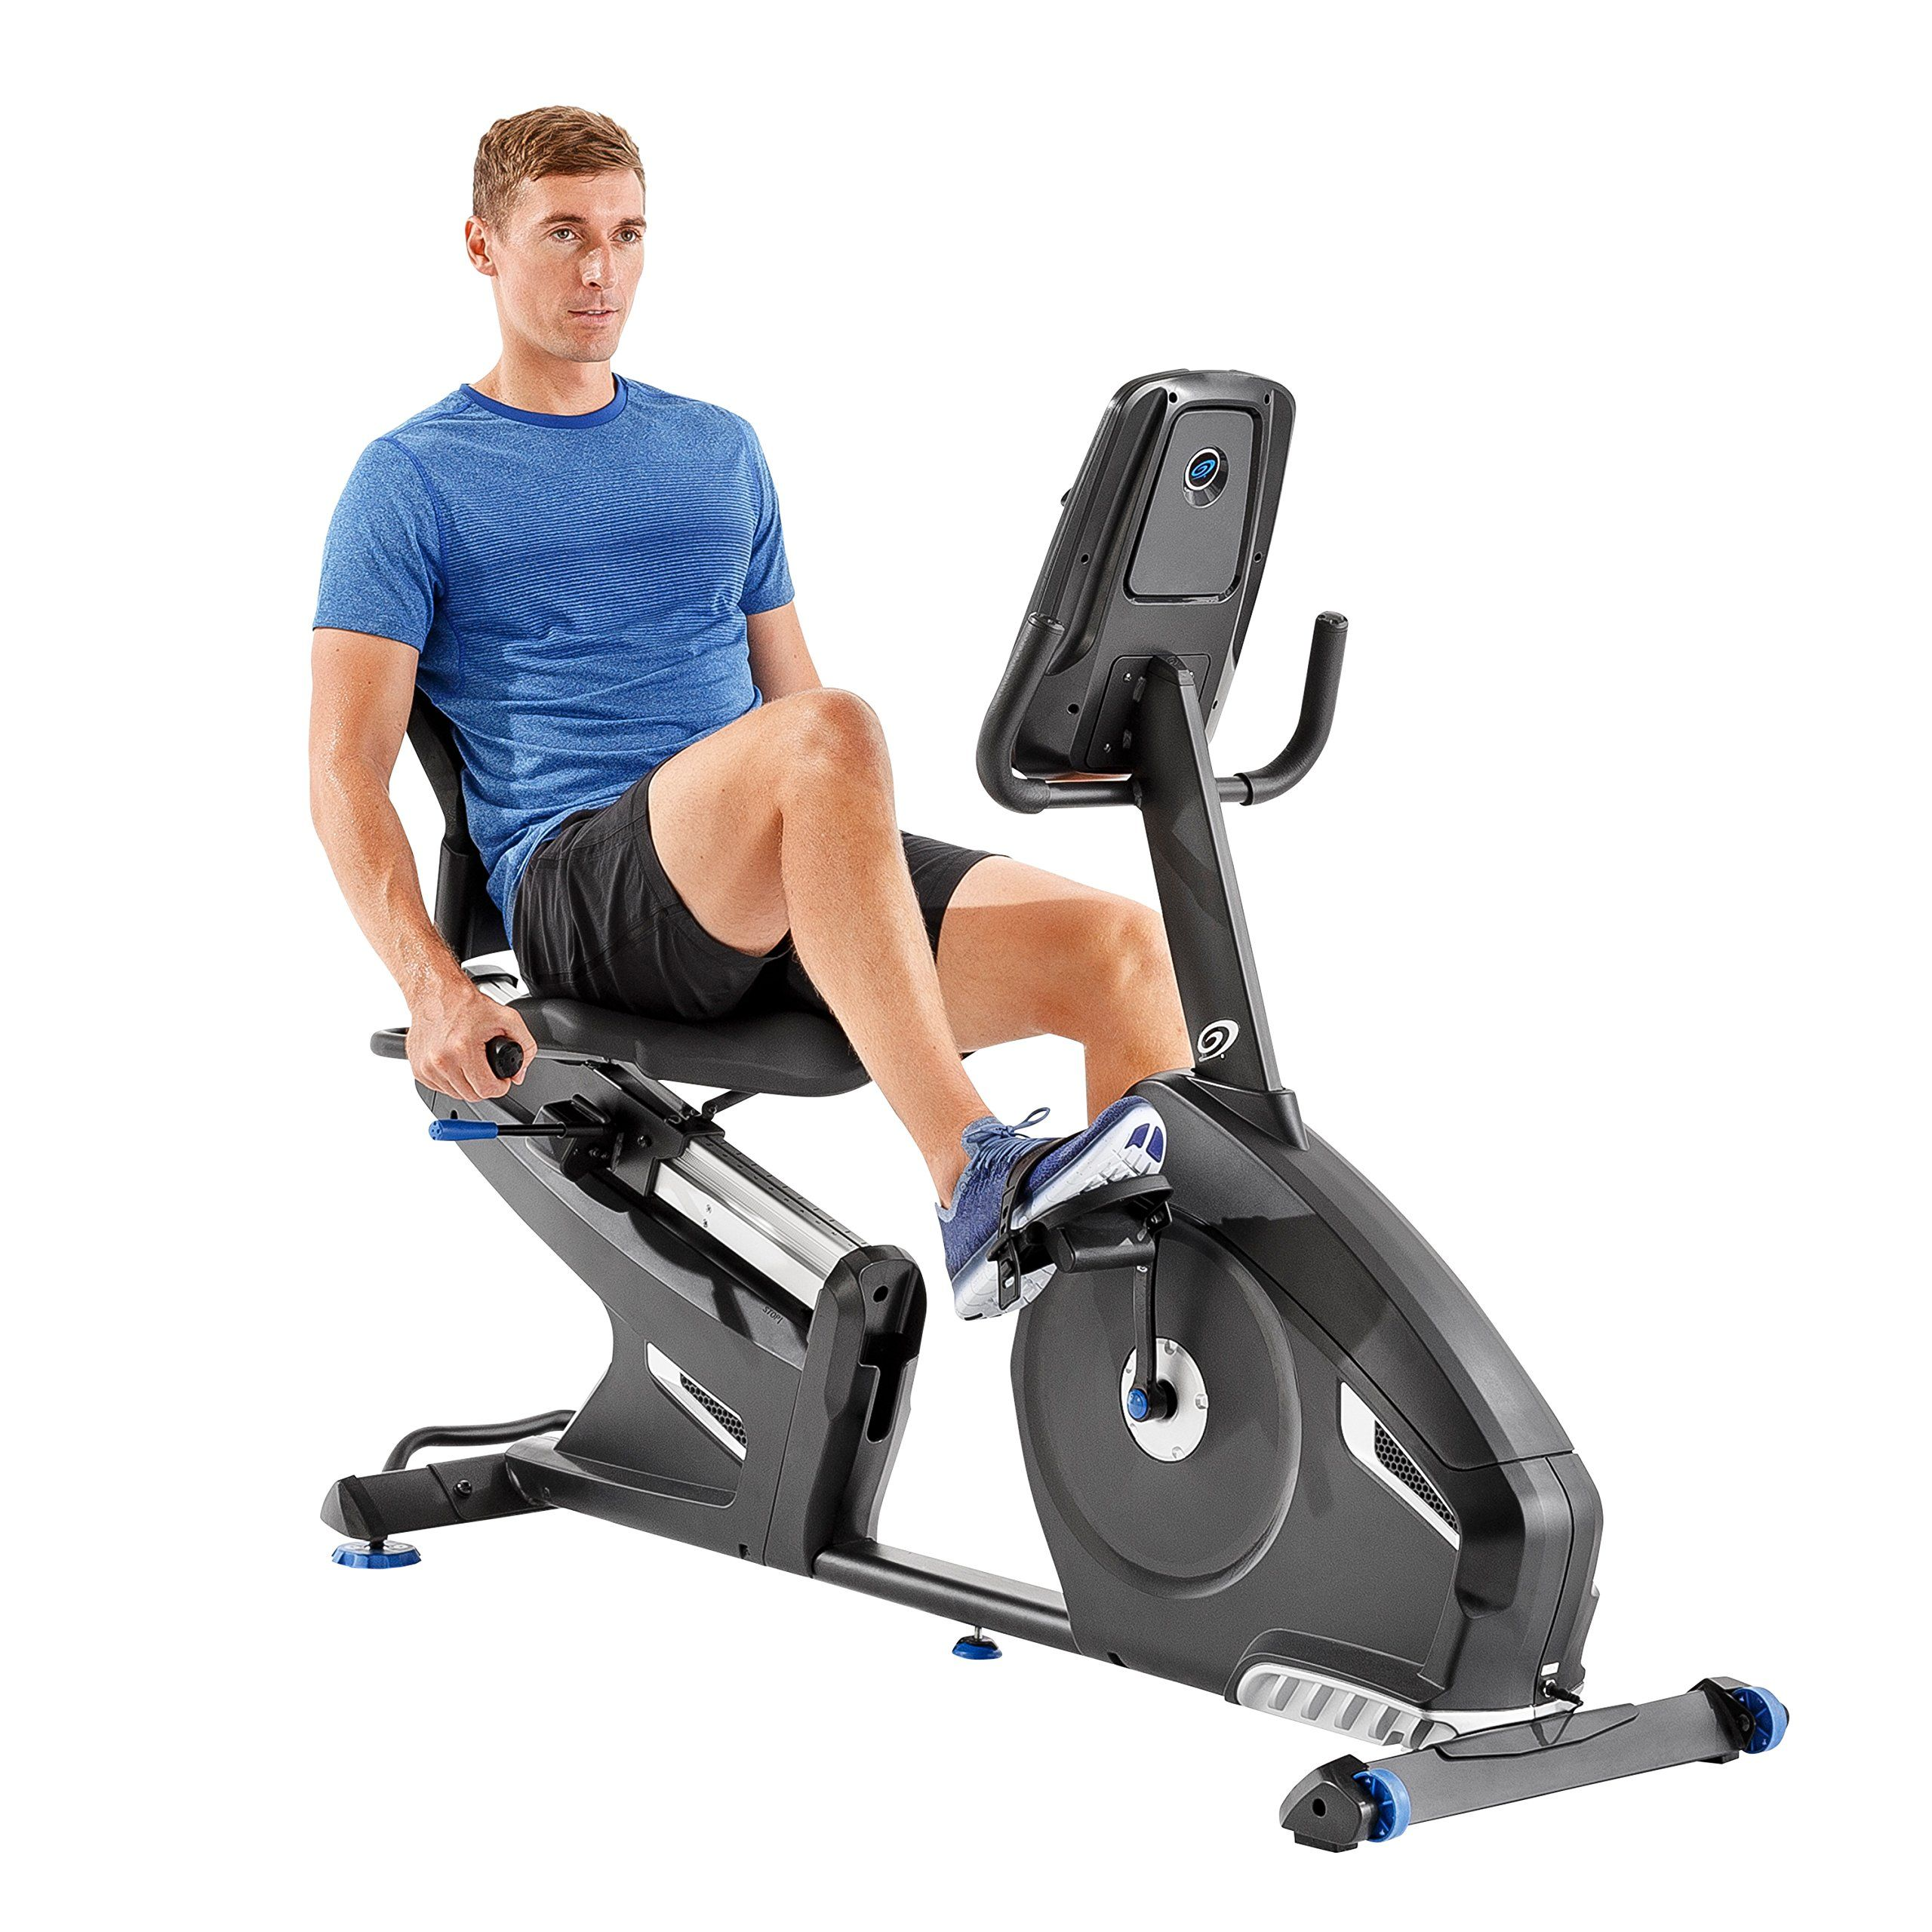 Recumbent Bike Reviews For 2019 10 Best Recumbent Exercise Bikes